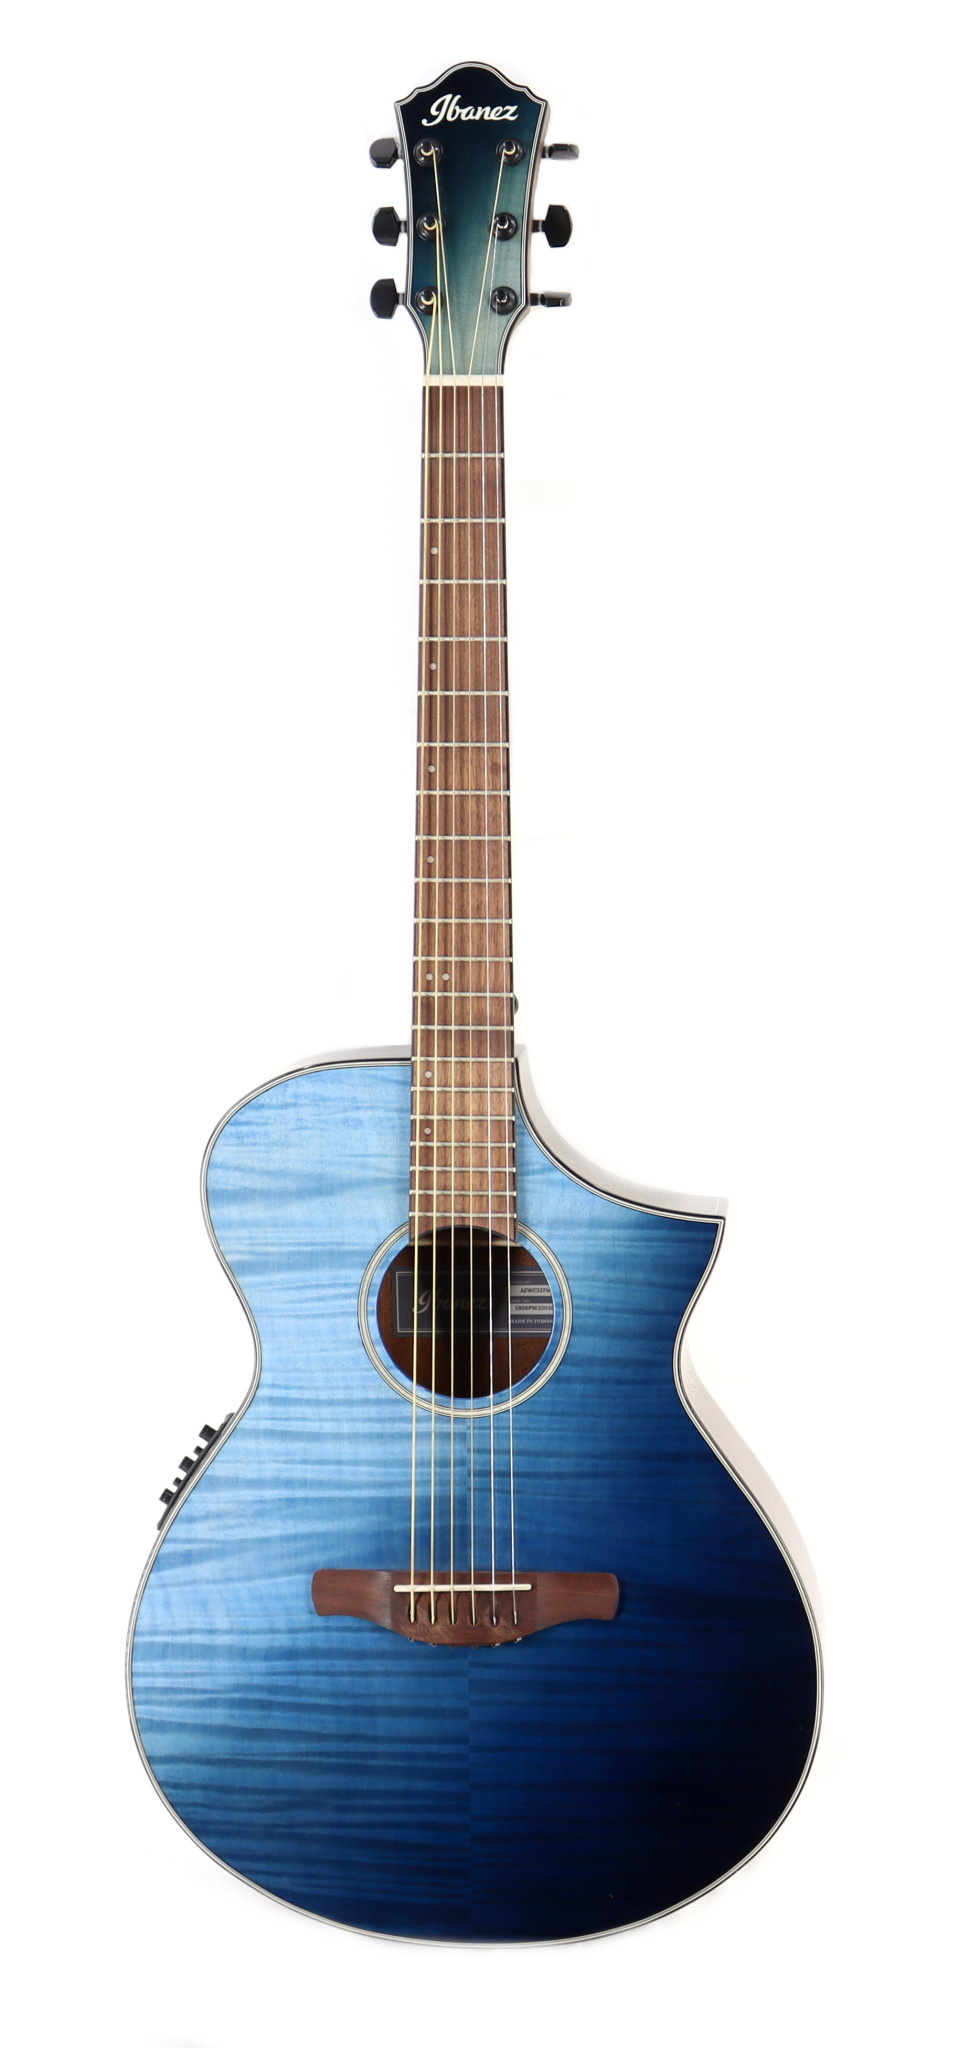 Ibanez Ibanez AEWC32FMISF Acoustic Guitar in Indigo Sunset Fade High Gloss